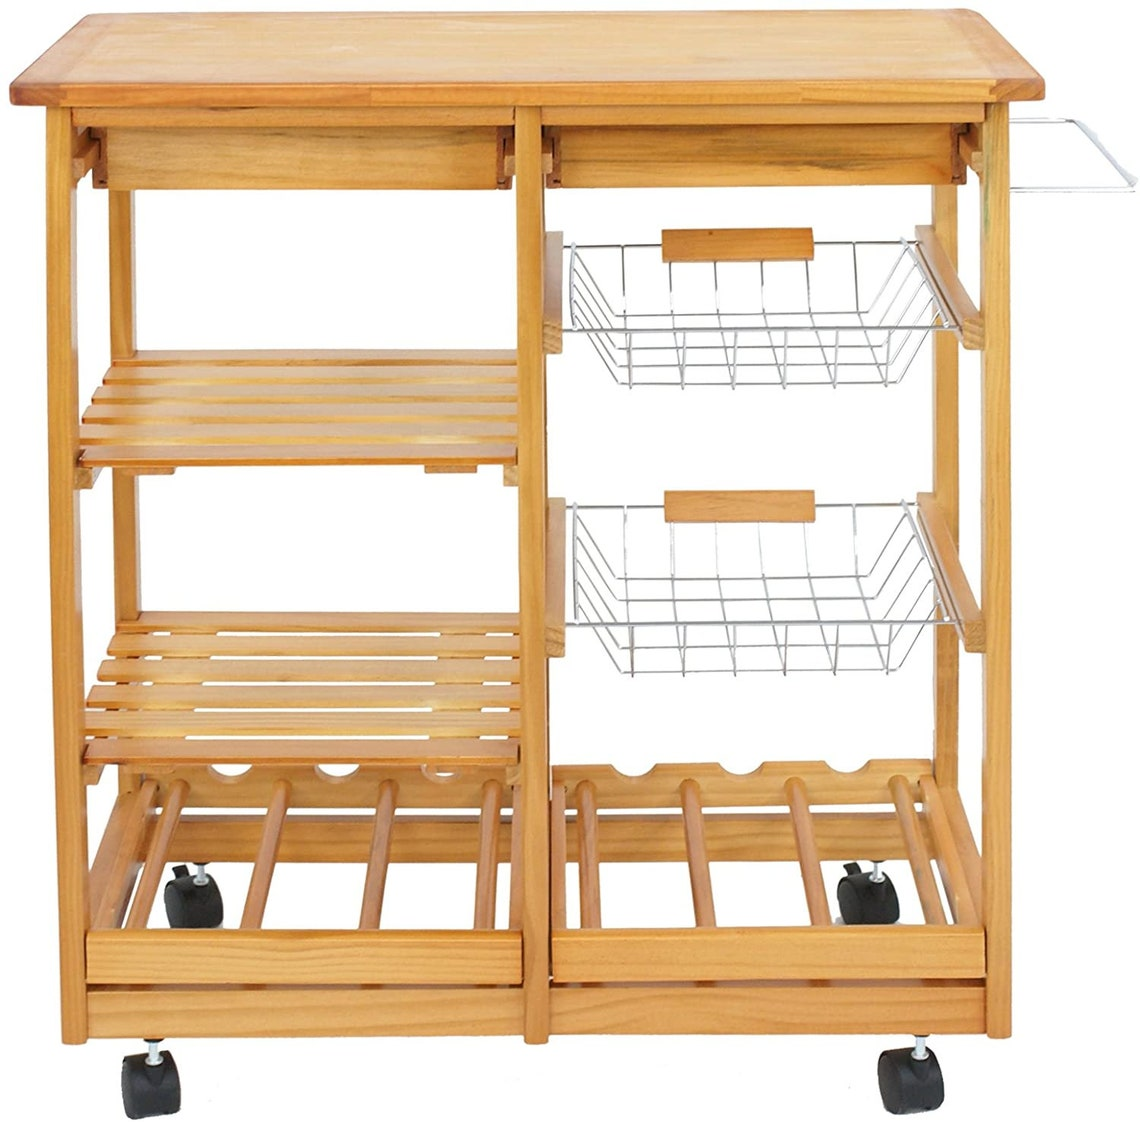 Rolling Wood Kitchen Island Storage Trolley Utility Cart Rack w Storage Drawers Baskets Dining Stand w Wheels Countertop Wood Wood Top